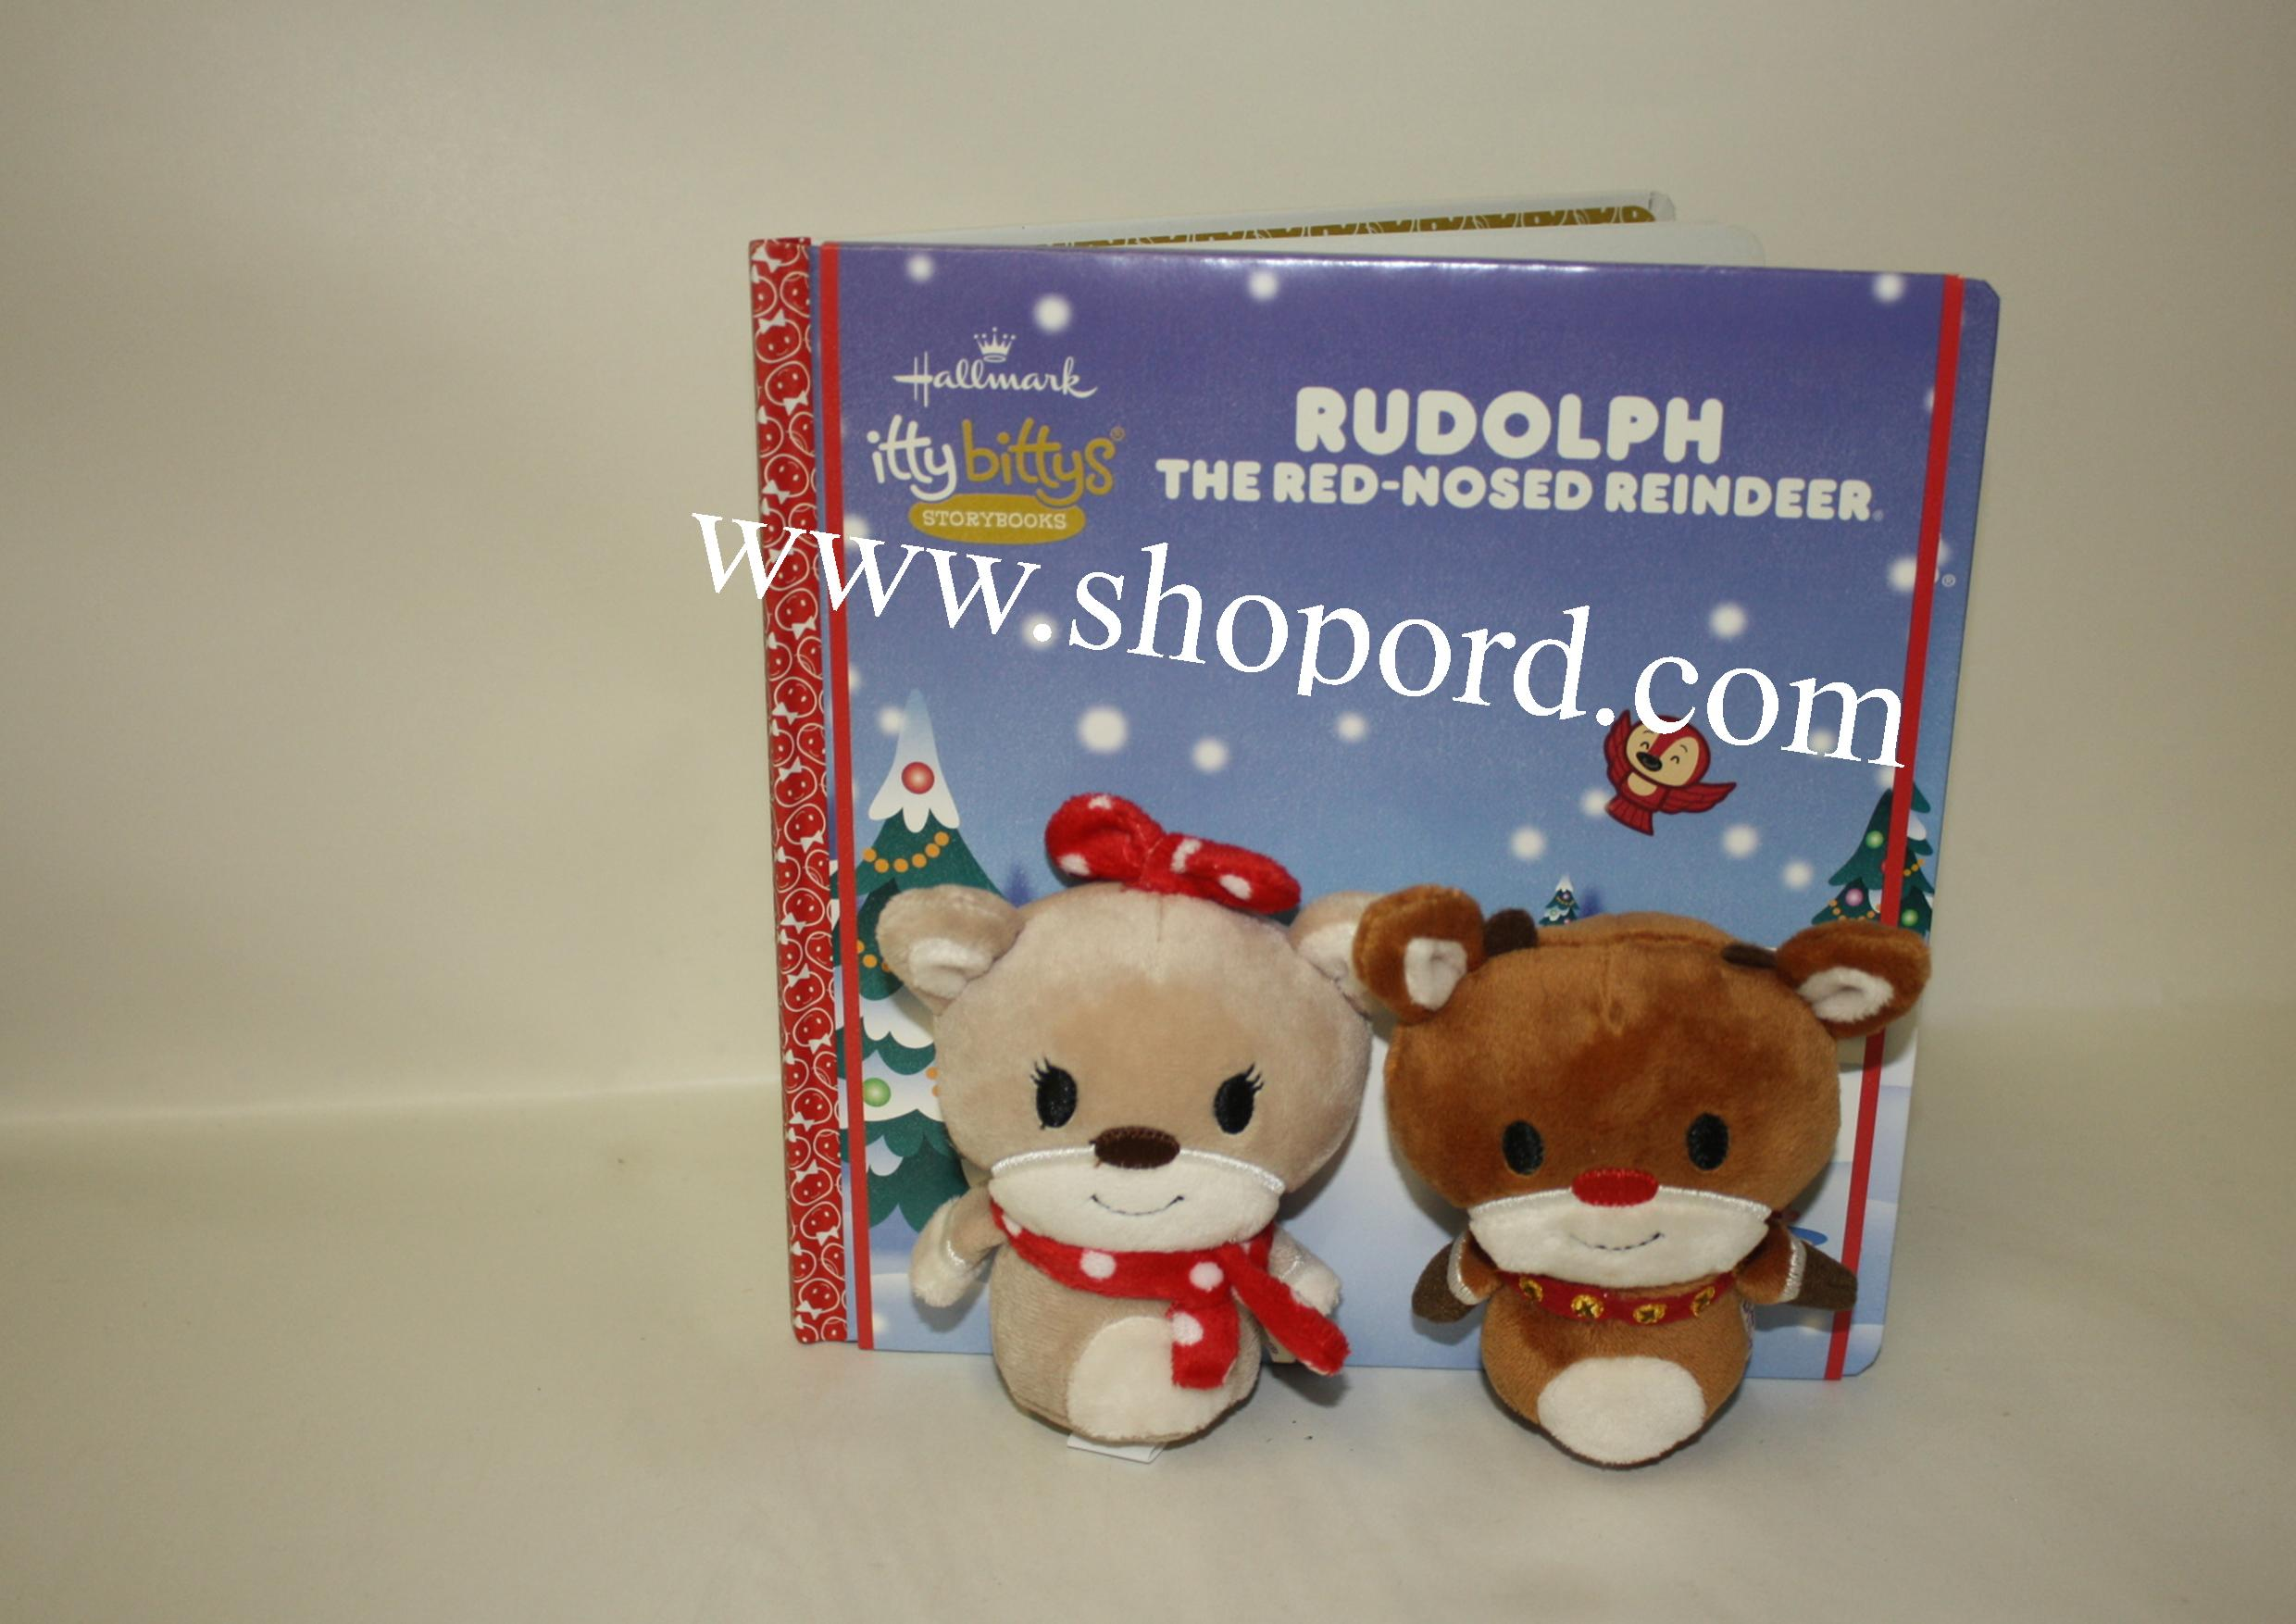 Hallmark itty bitty Rudolph The Red Nosed Reindeer Plush & Hardcover Book KDD1144